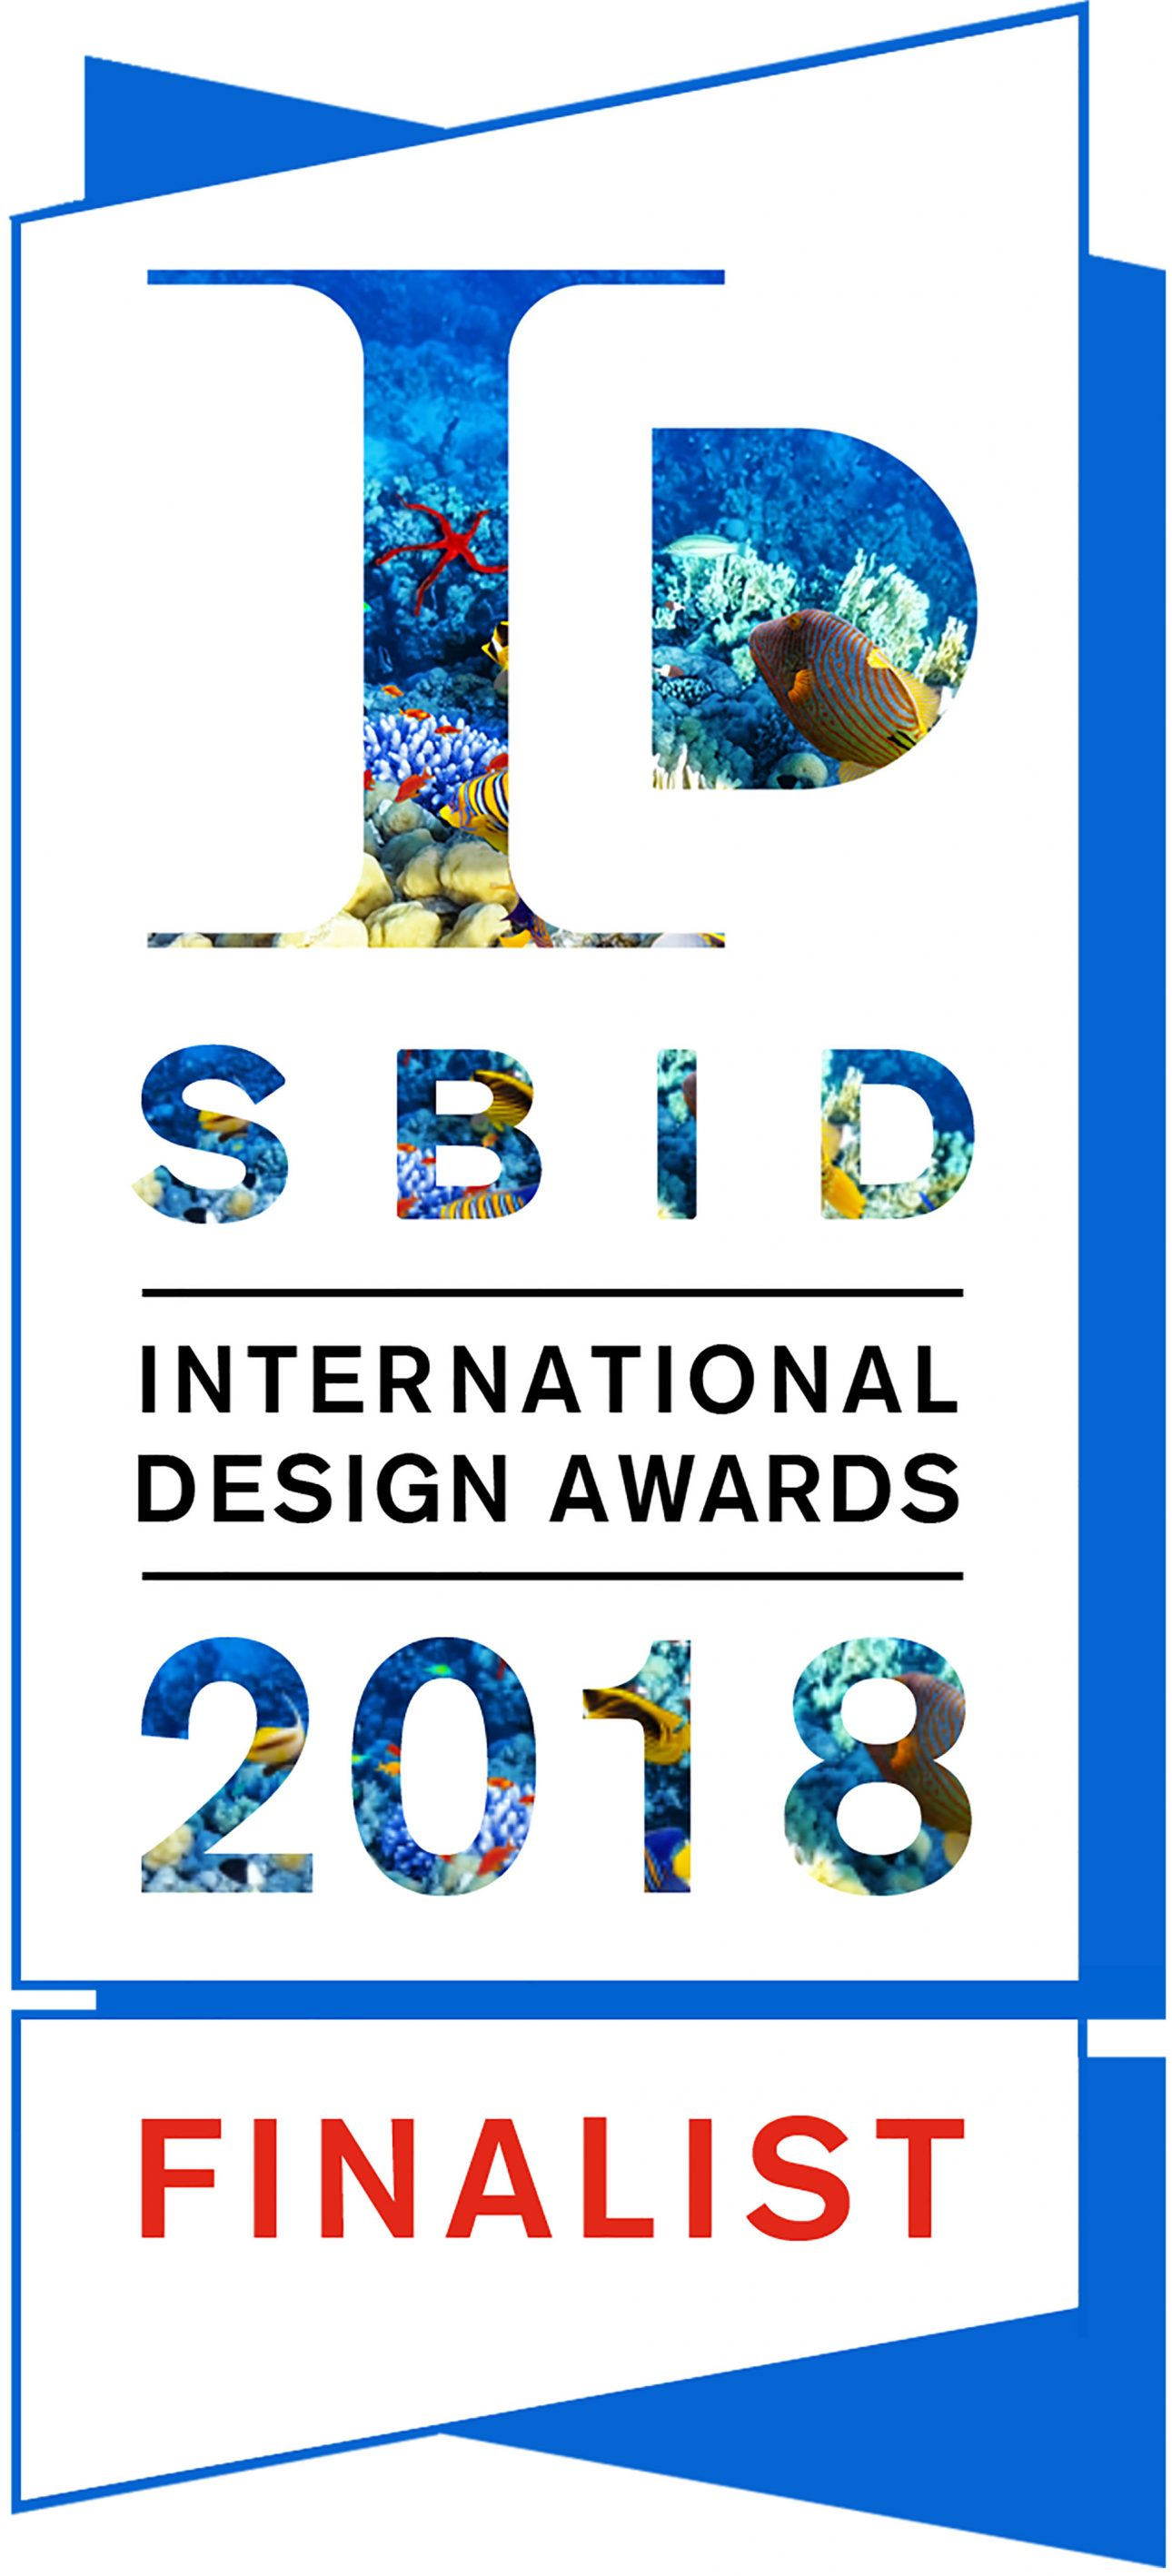 JOI-Design is one of the finalists of the 2018 SBID Awards